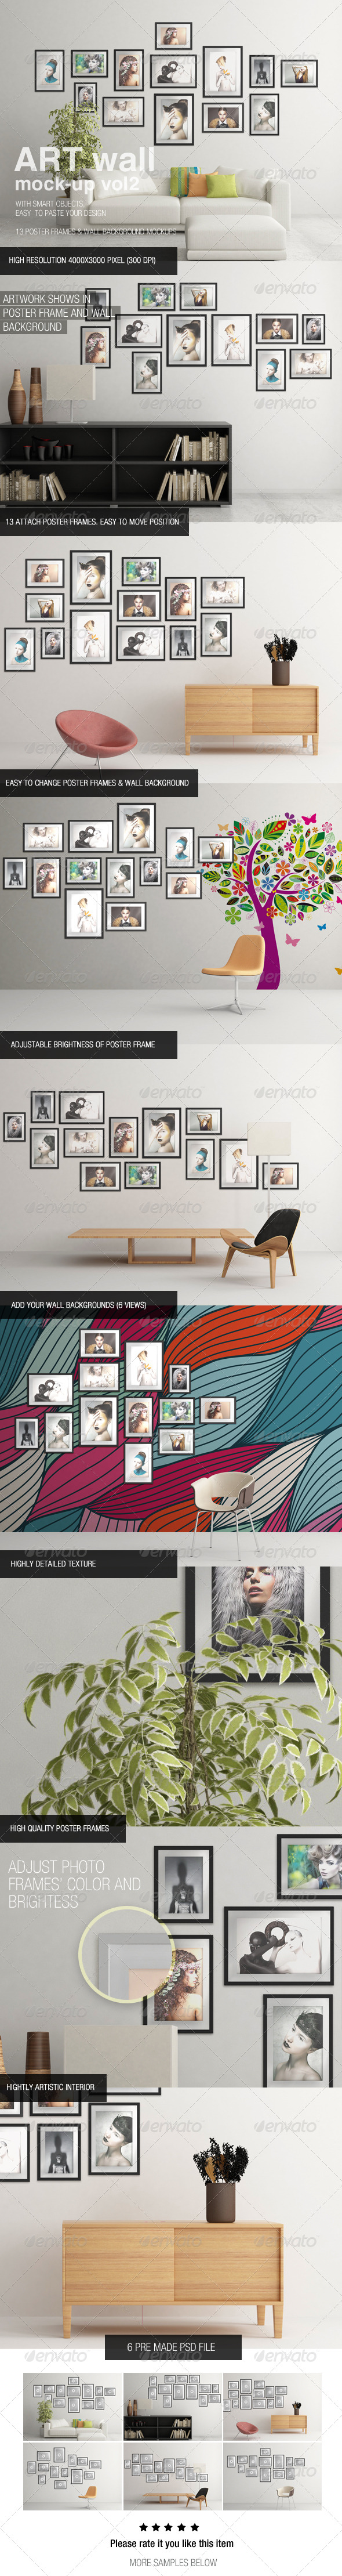 Art Wall Mock-Up Vol.2 - Posters Print